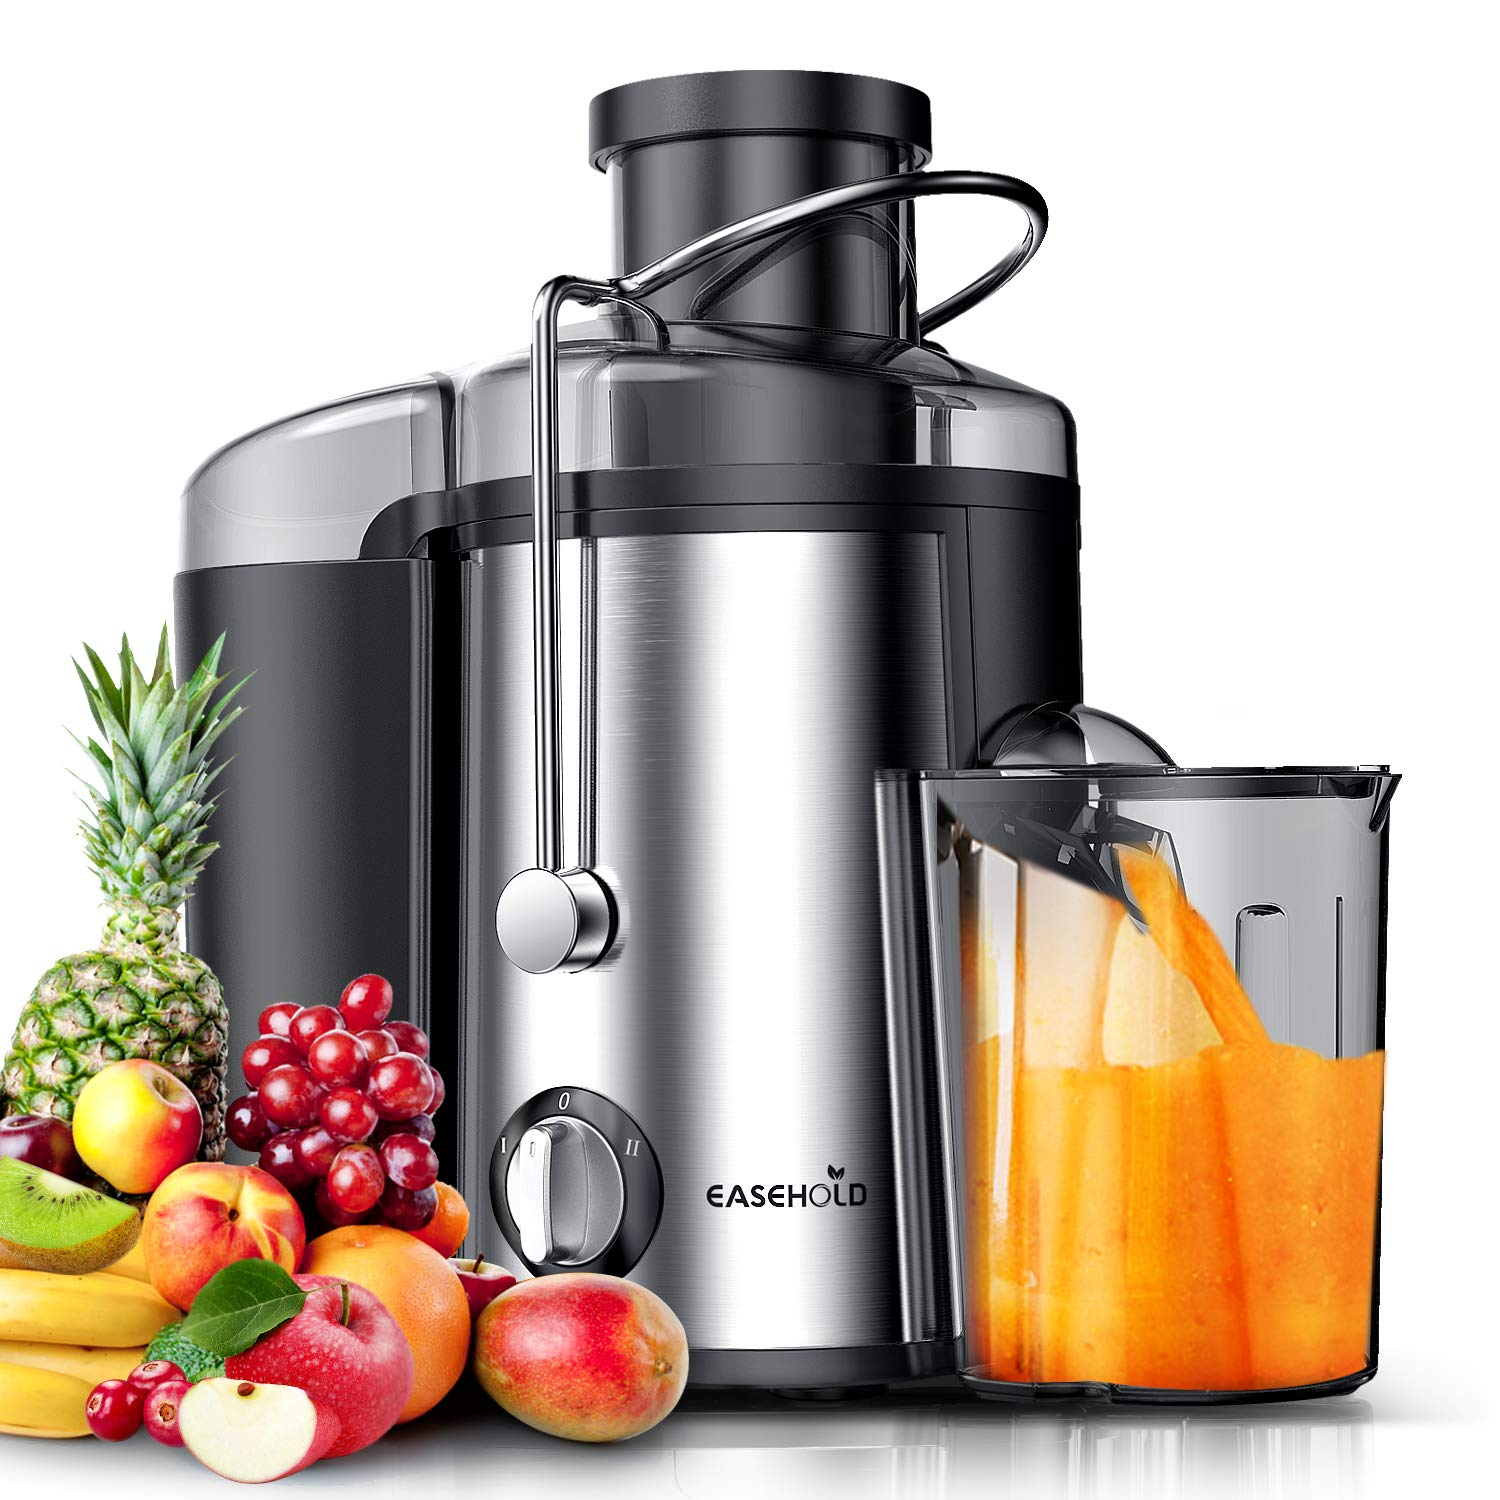 Easehold Juicer Machines Extractor 600W Centrifugal Juicers Electric Anti-Drip Dual Speed BPA-Free with Juice Jug and Pulp Container for Fruit Vegetable by EASEHOLD